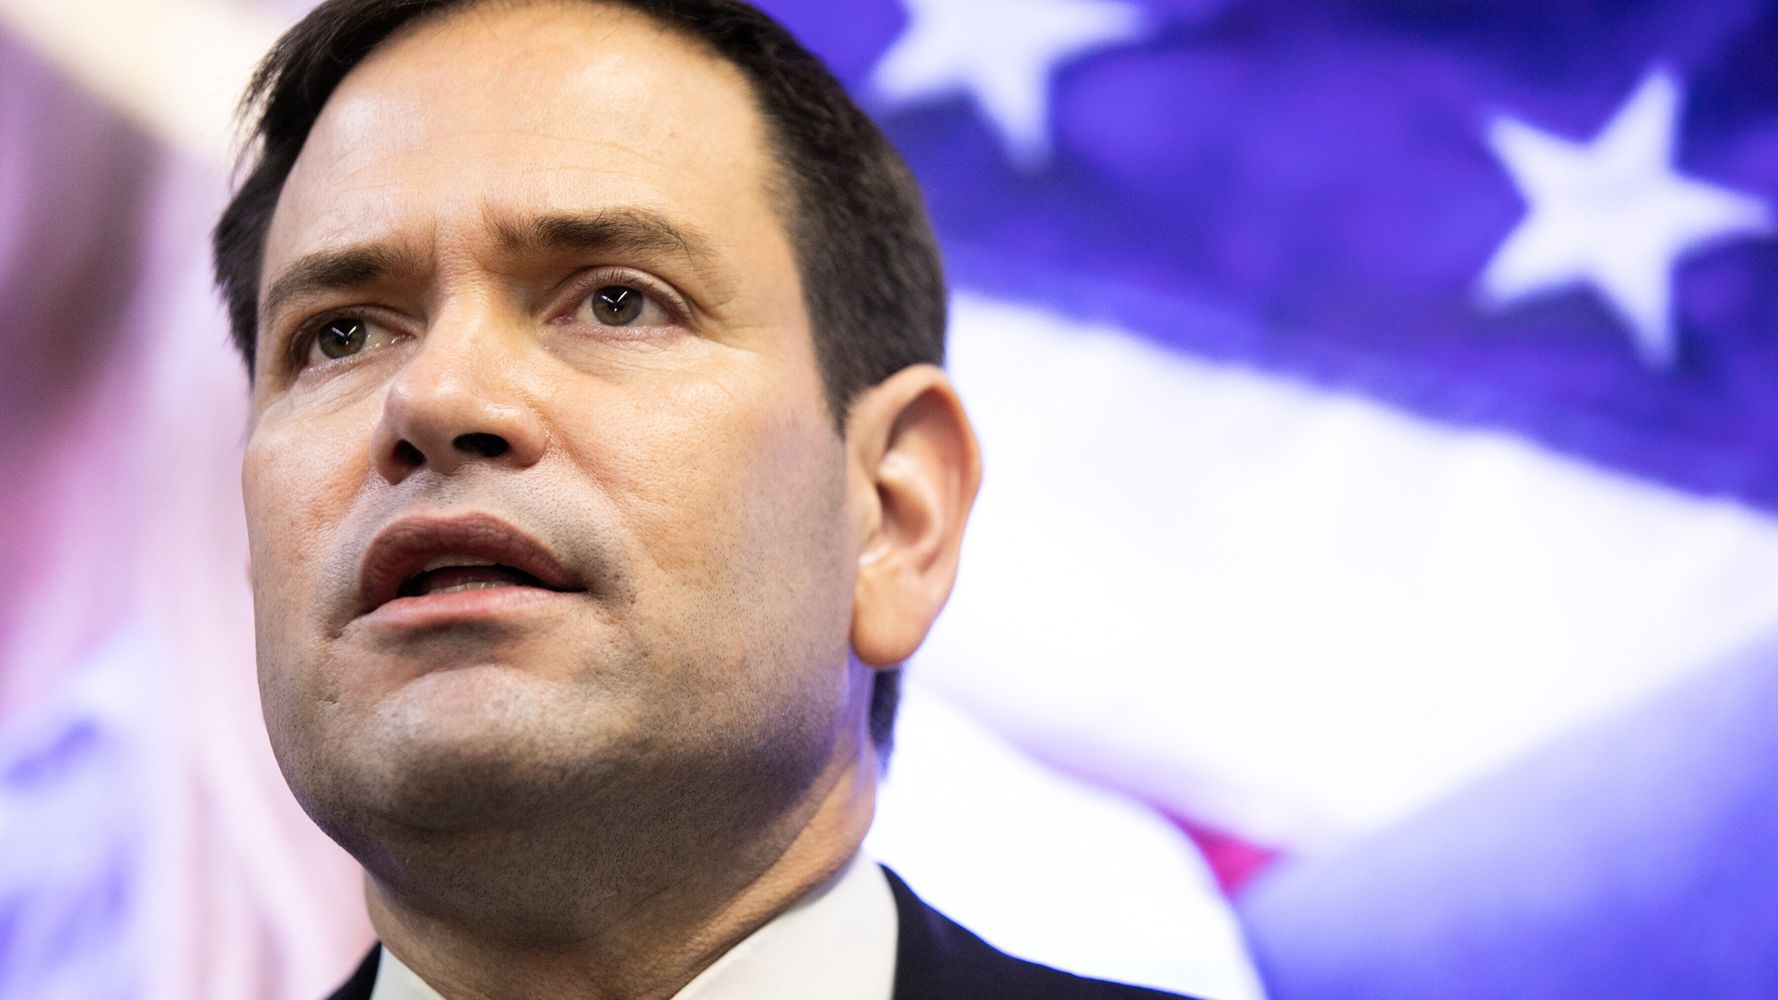 Marco Rubio Gets Ripped For Criticizing Biden's 'Ivy League' Foreign Policy Team